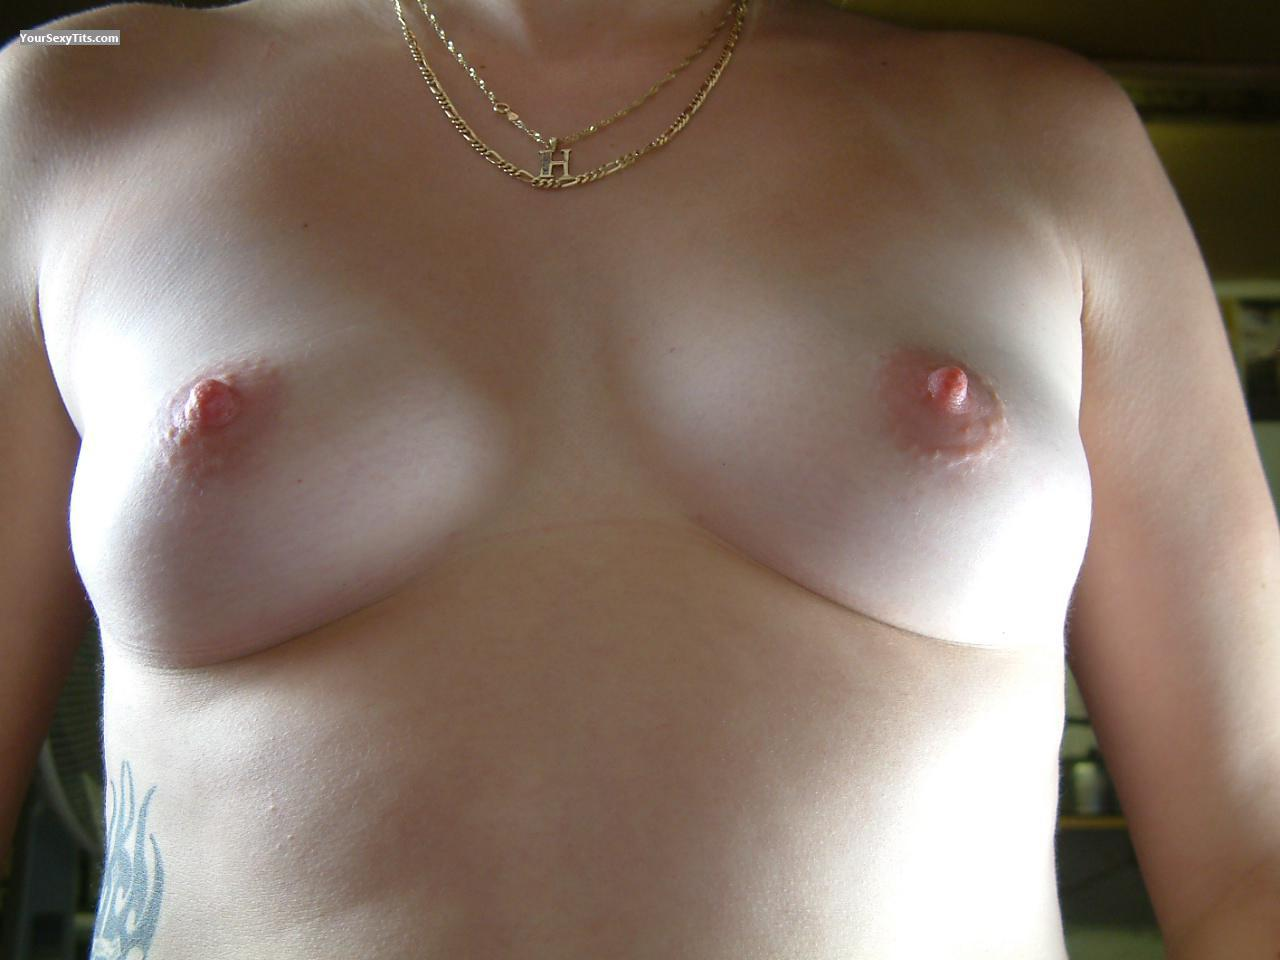 Tit Flash: My Friend's Small Tits - My Mate from United States